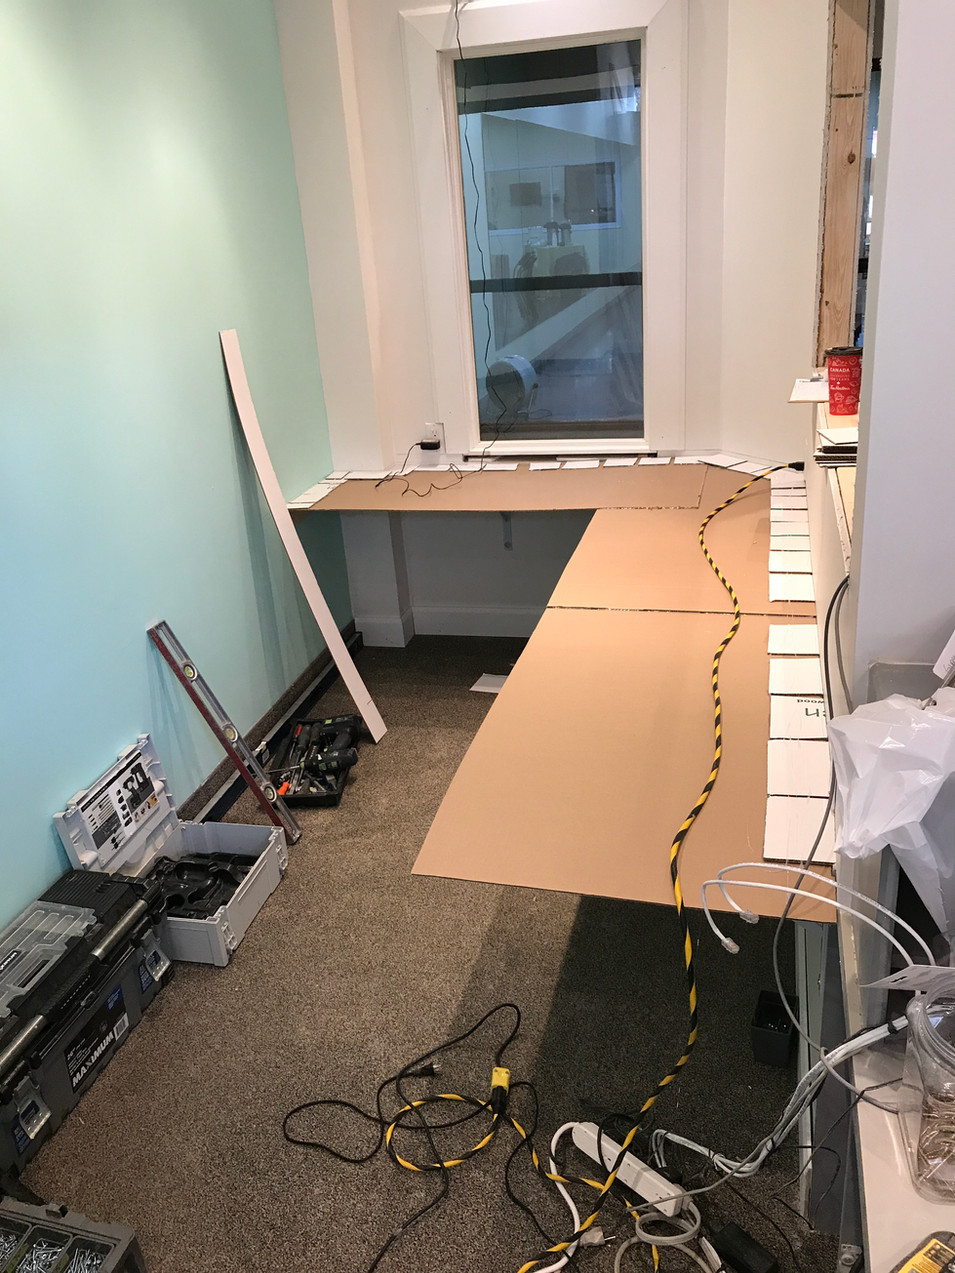 Sims templating for the new front desk countertops.